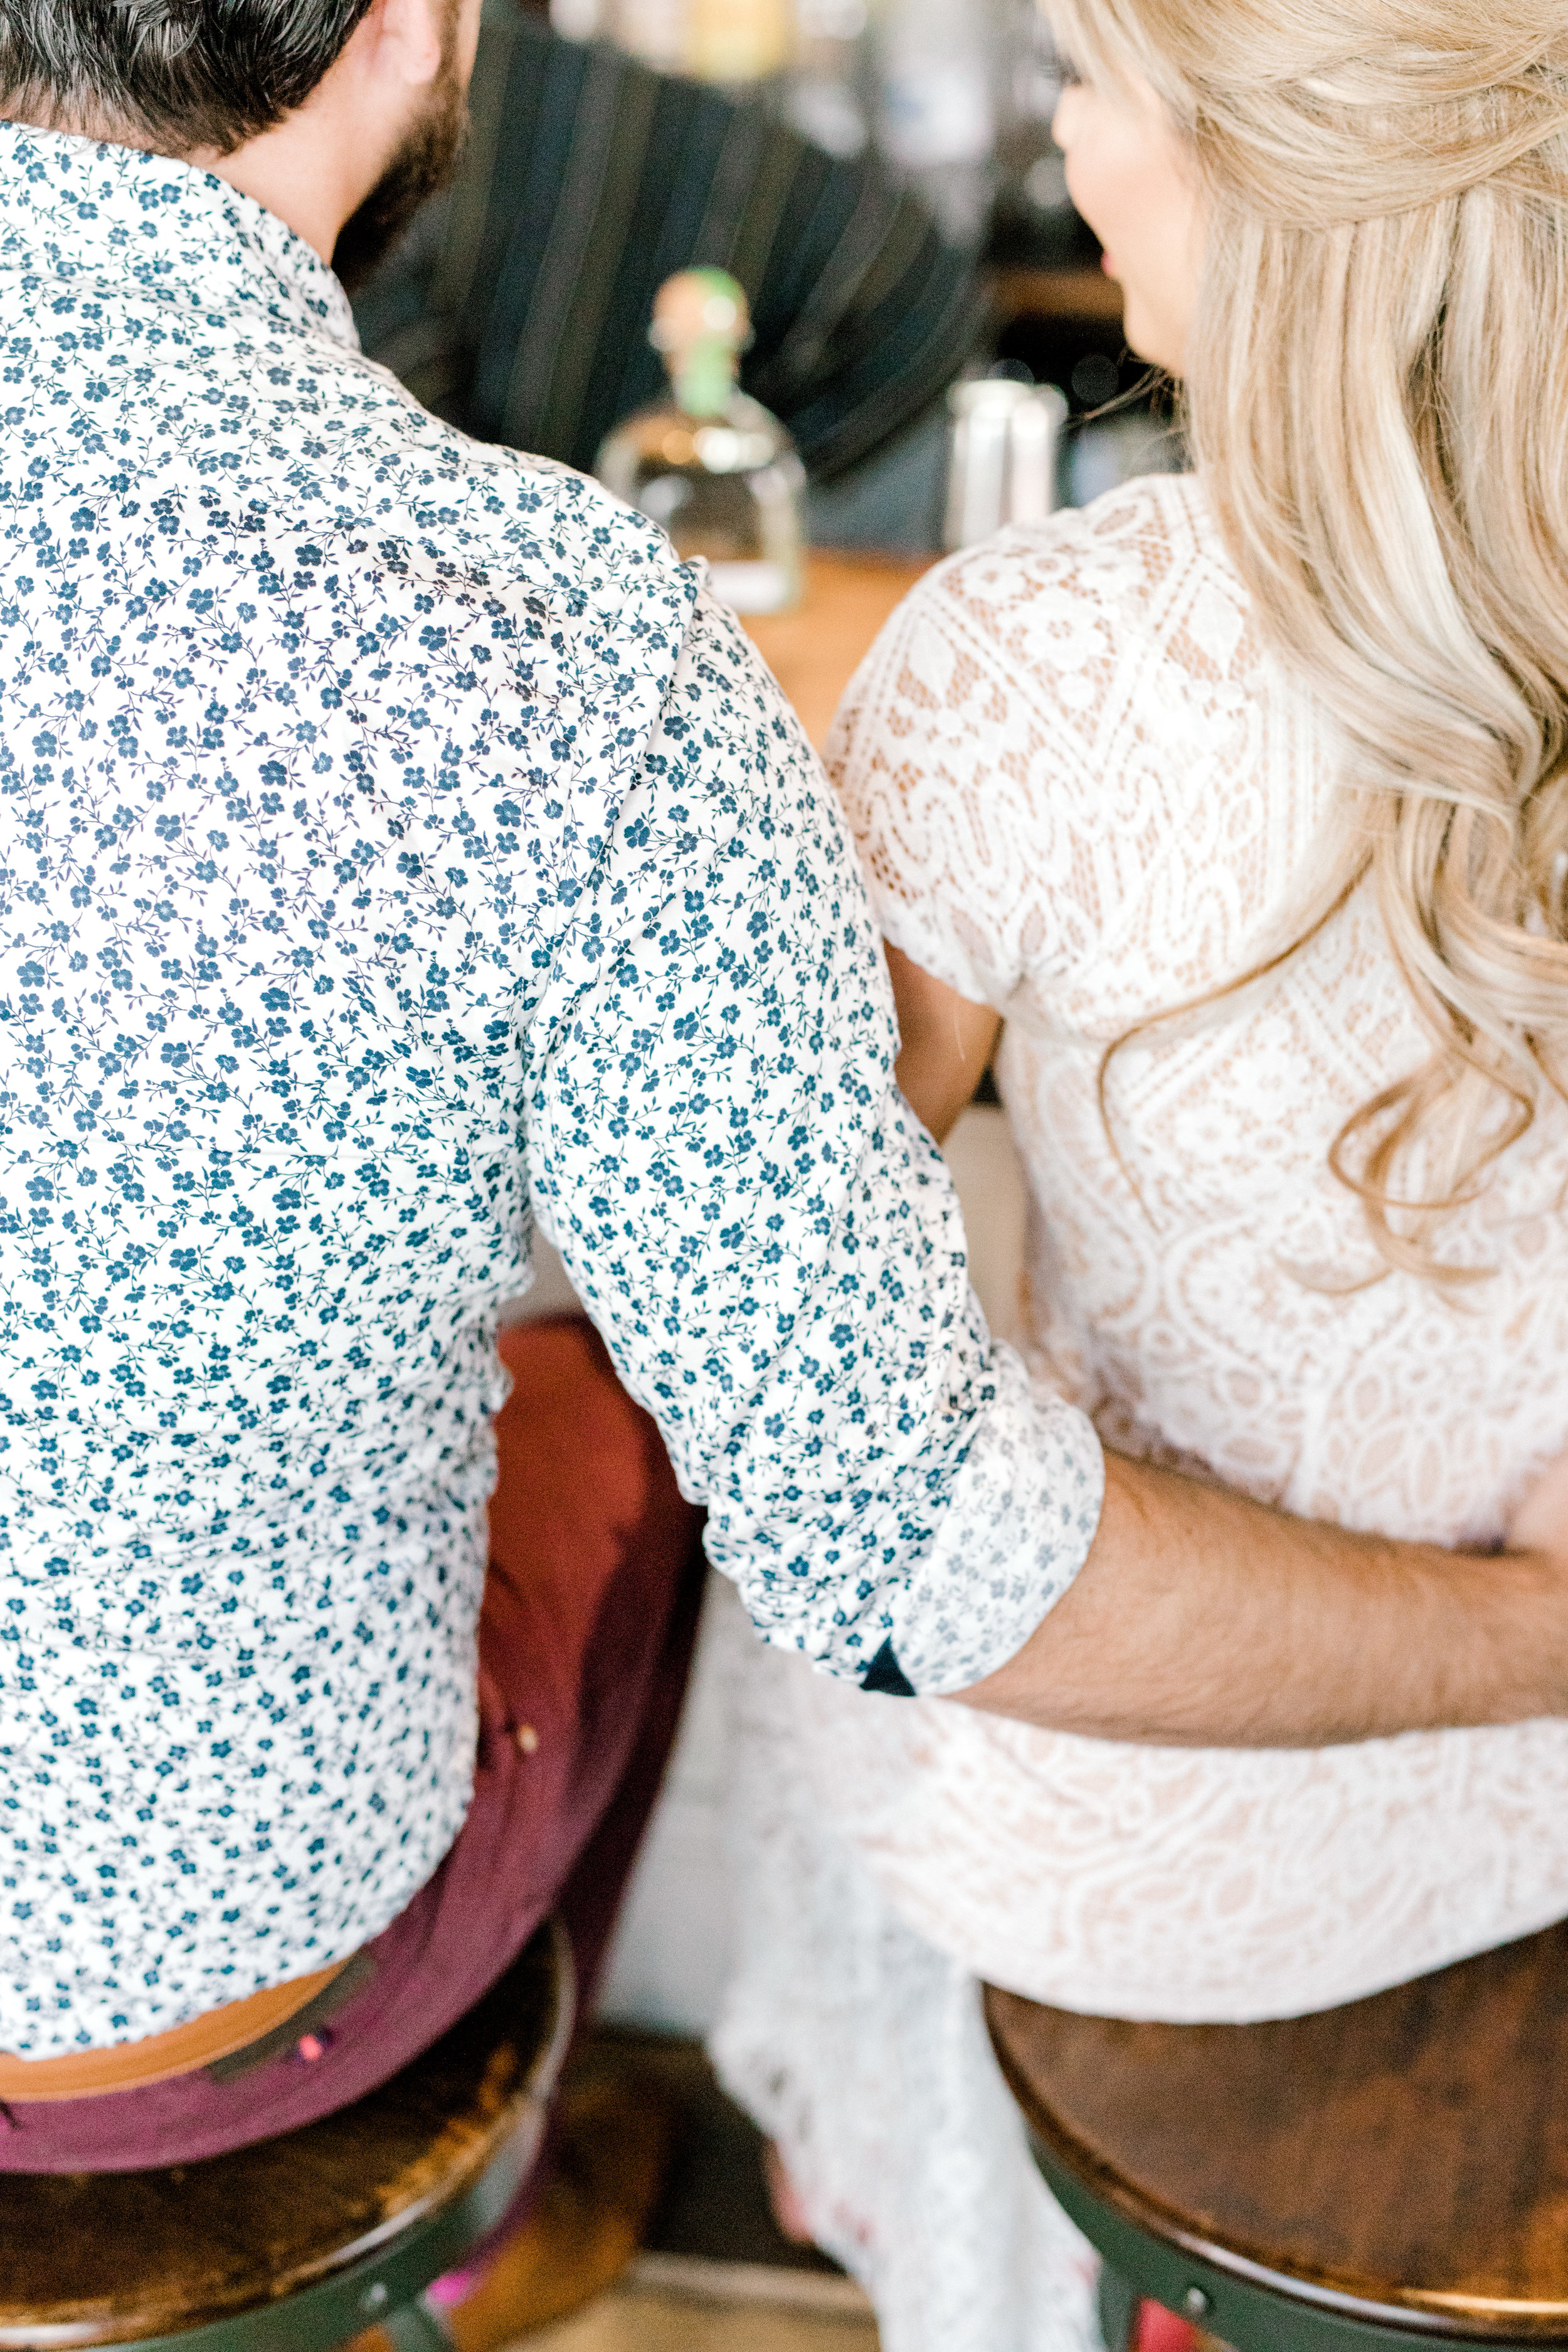 Arms around each other for this romantic fall engagement session at the Revolution House in Old City, Philadelphia.